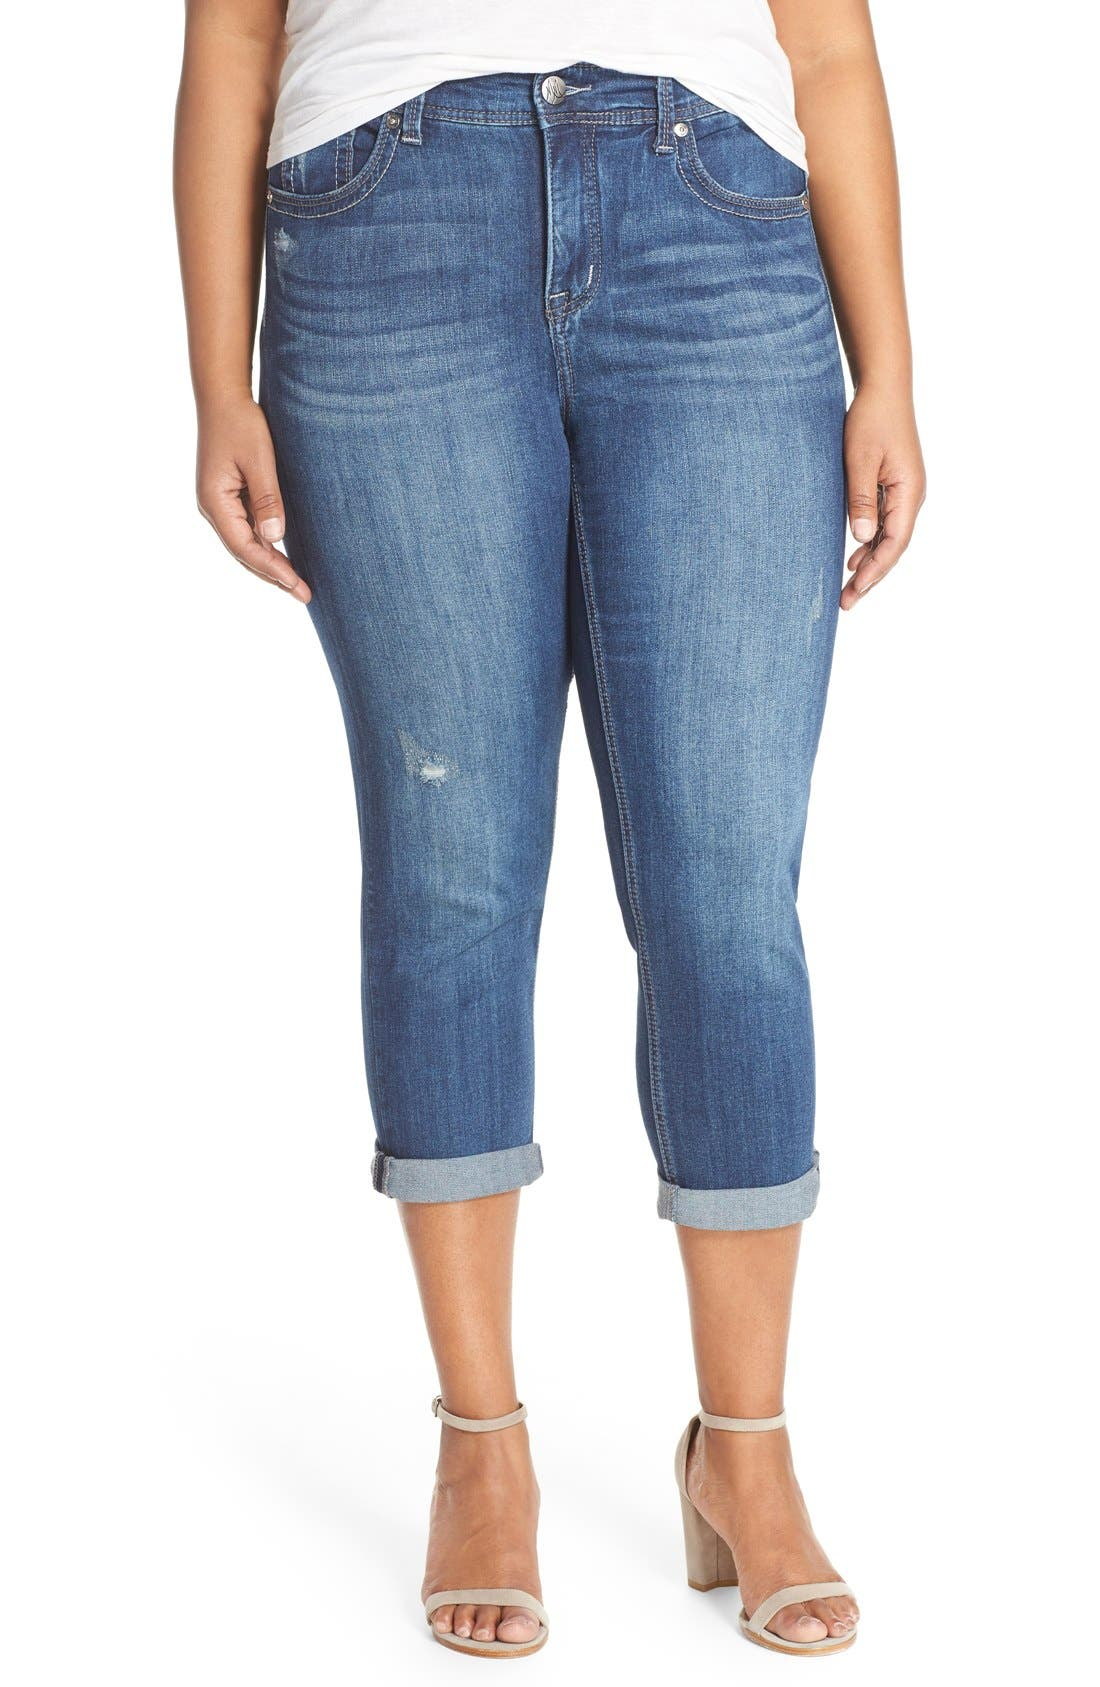 Melissa McCarthy Seven7 Stretch Crop Jeans (Crosby) (Plus Size)